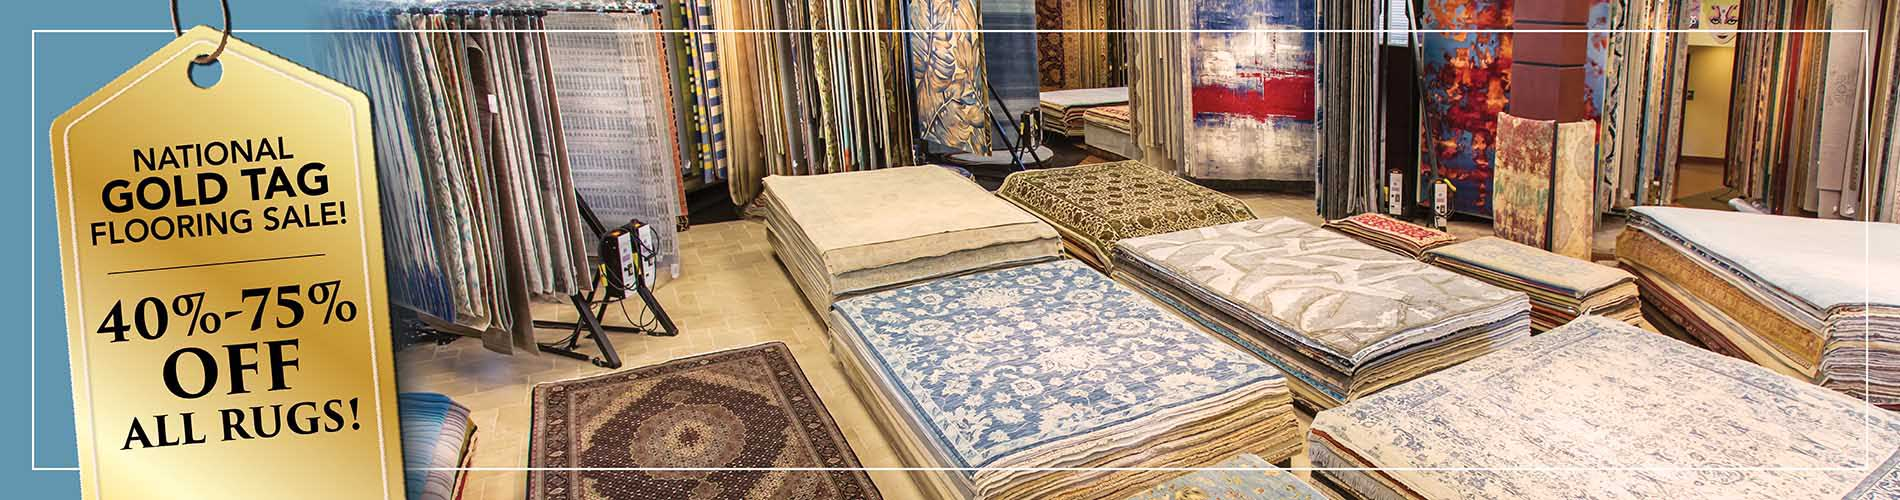 Save 40 to 70 percent off area rugs during our national gold tag flooring sale at Abbey Carpet in Naples